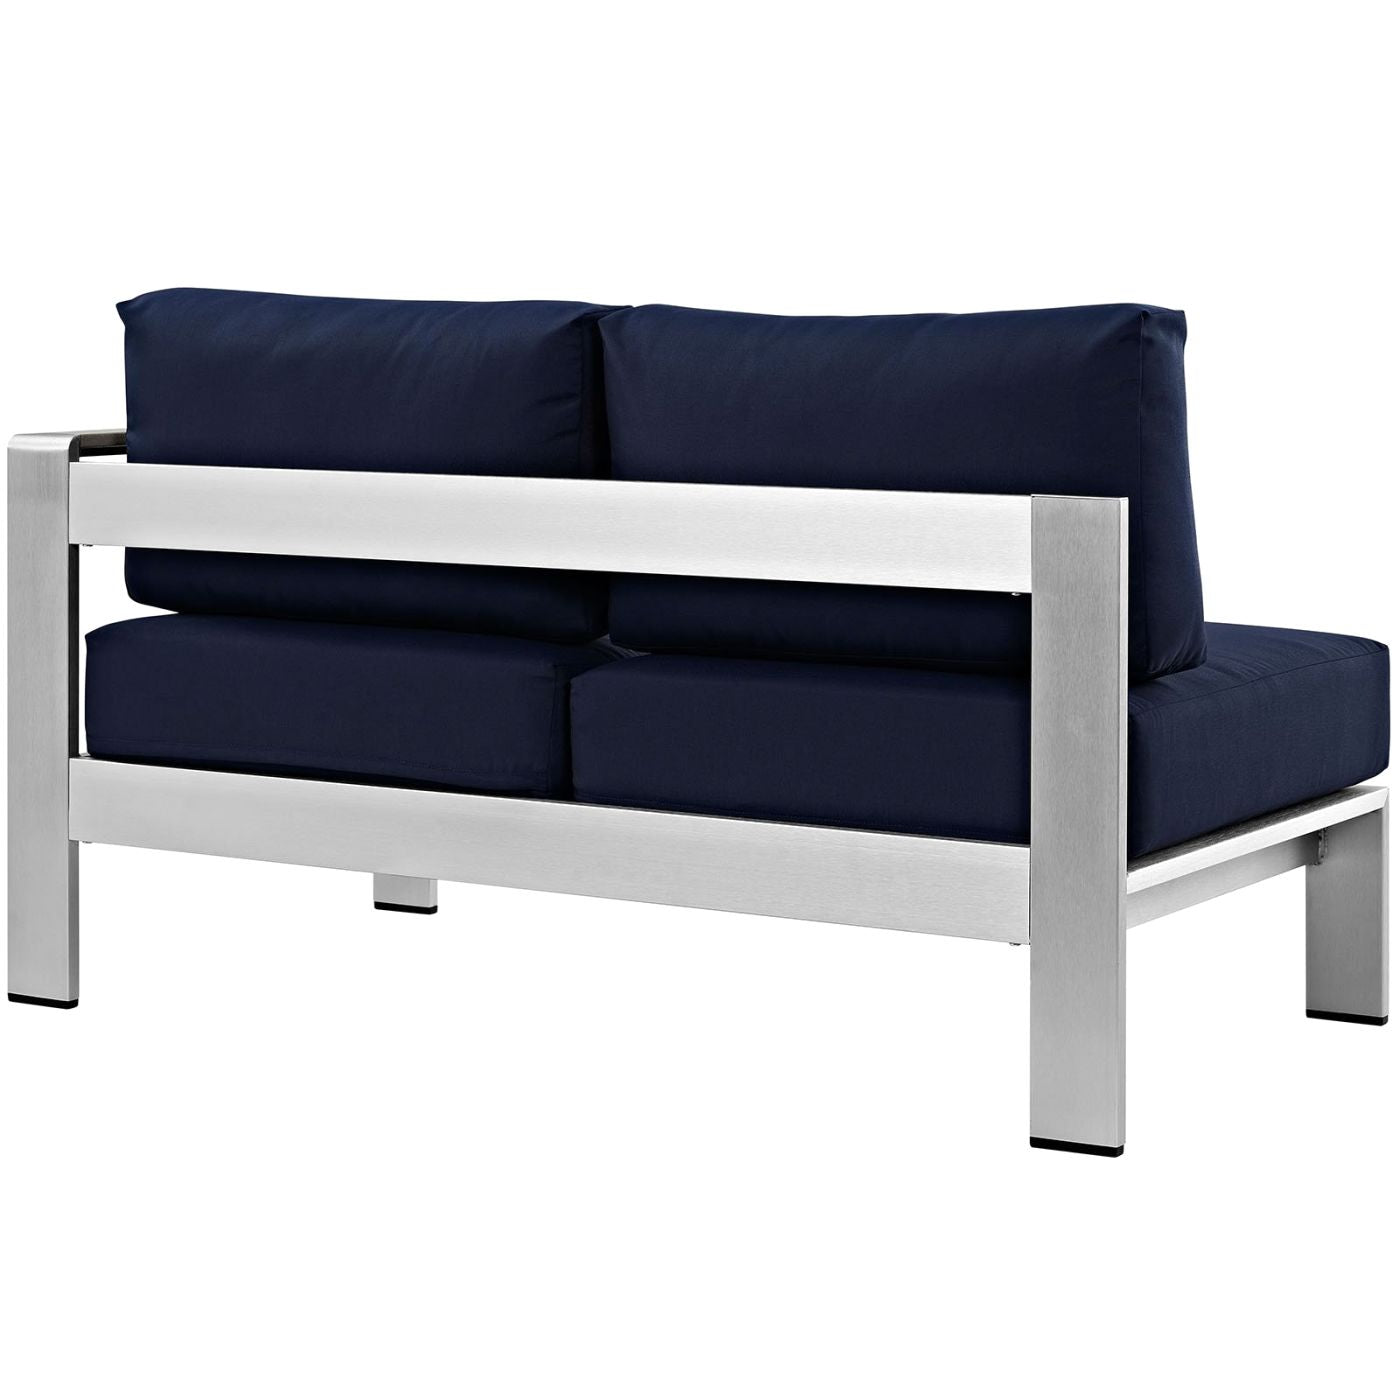 Modway shore right arm corner sectional outdoor patio for Sofa with only one arm